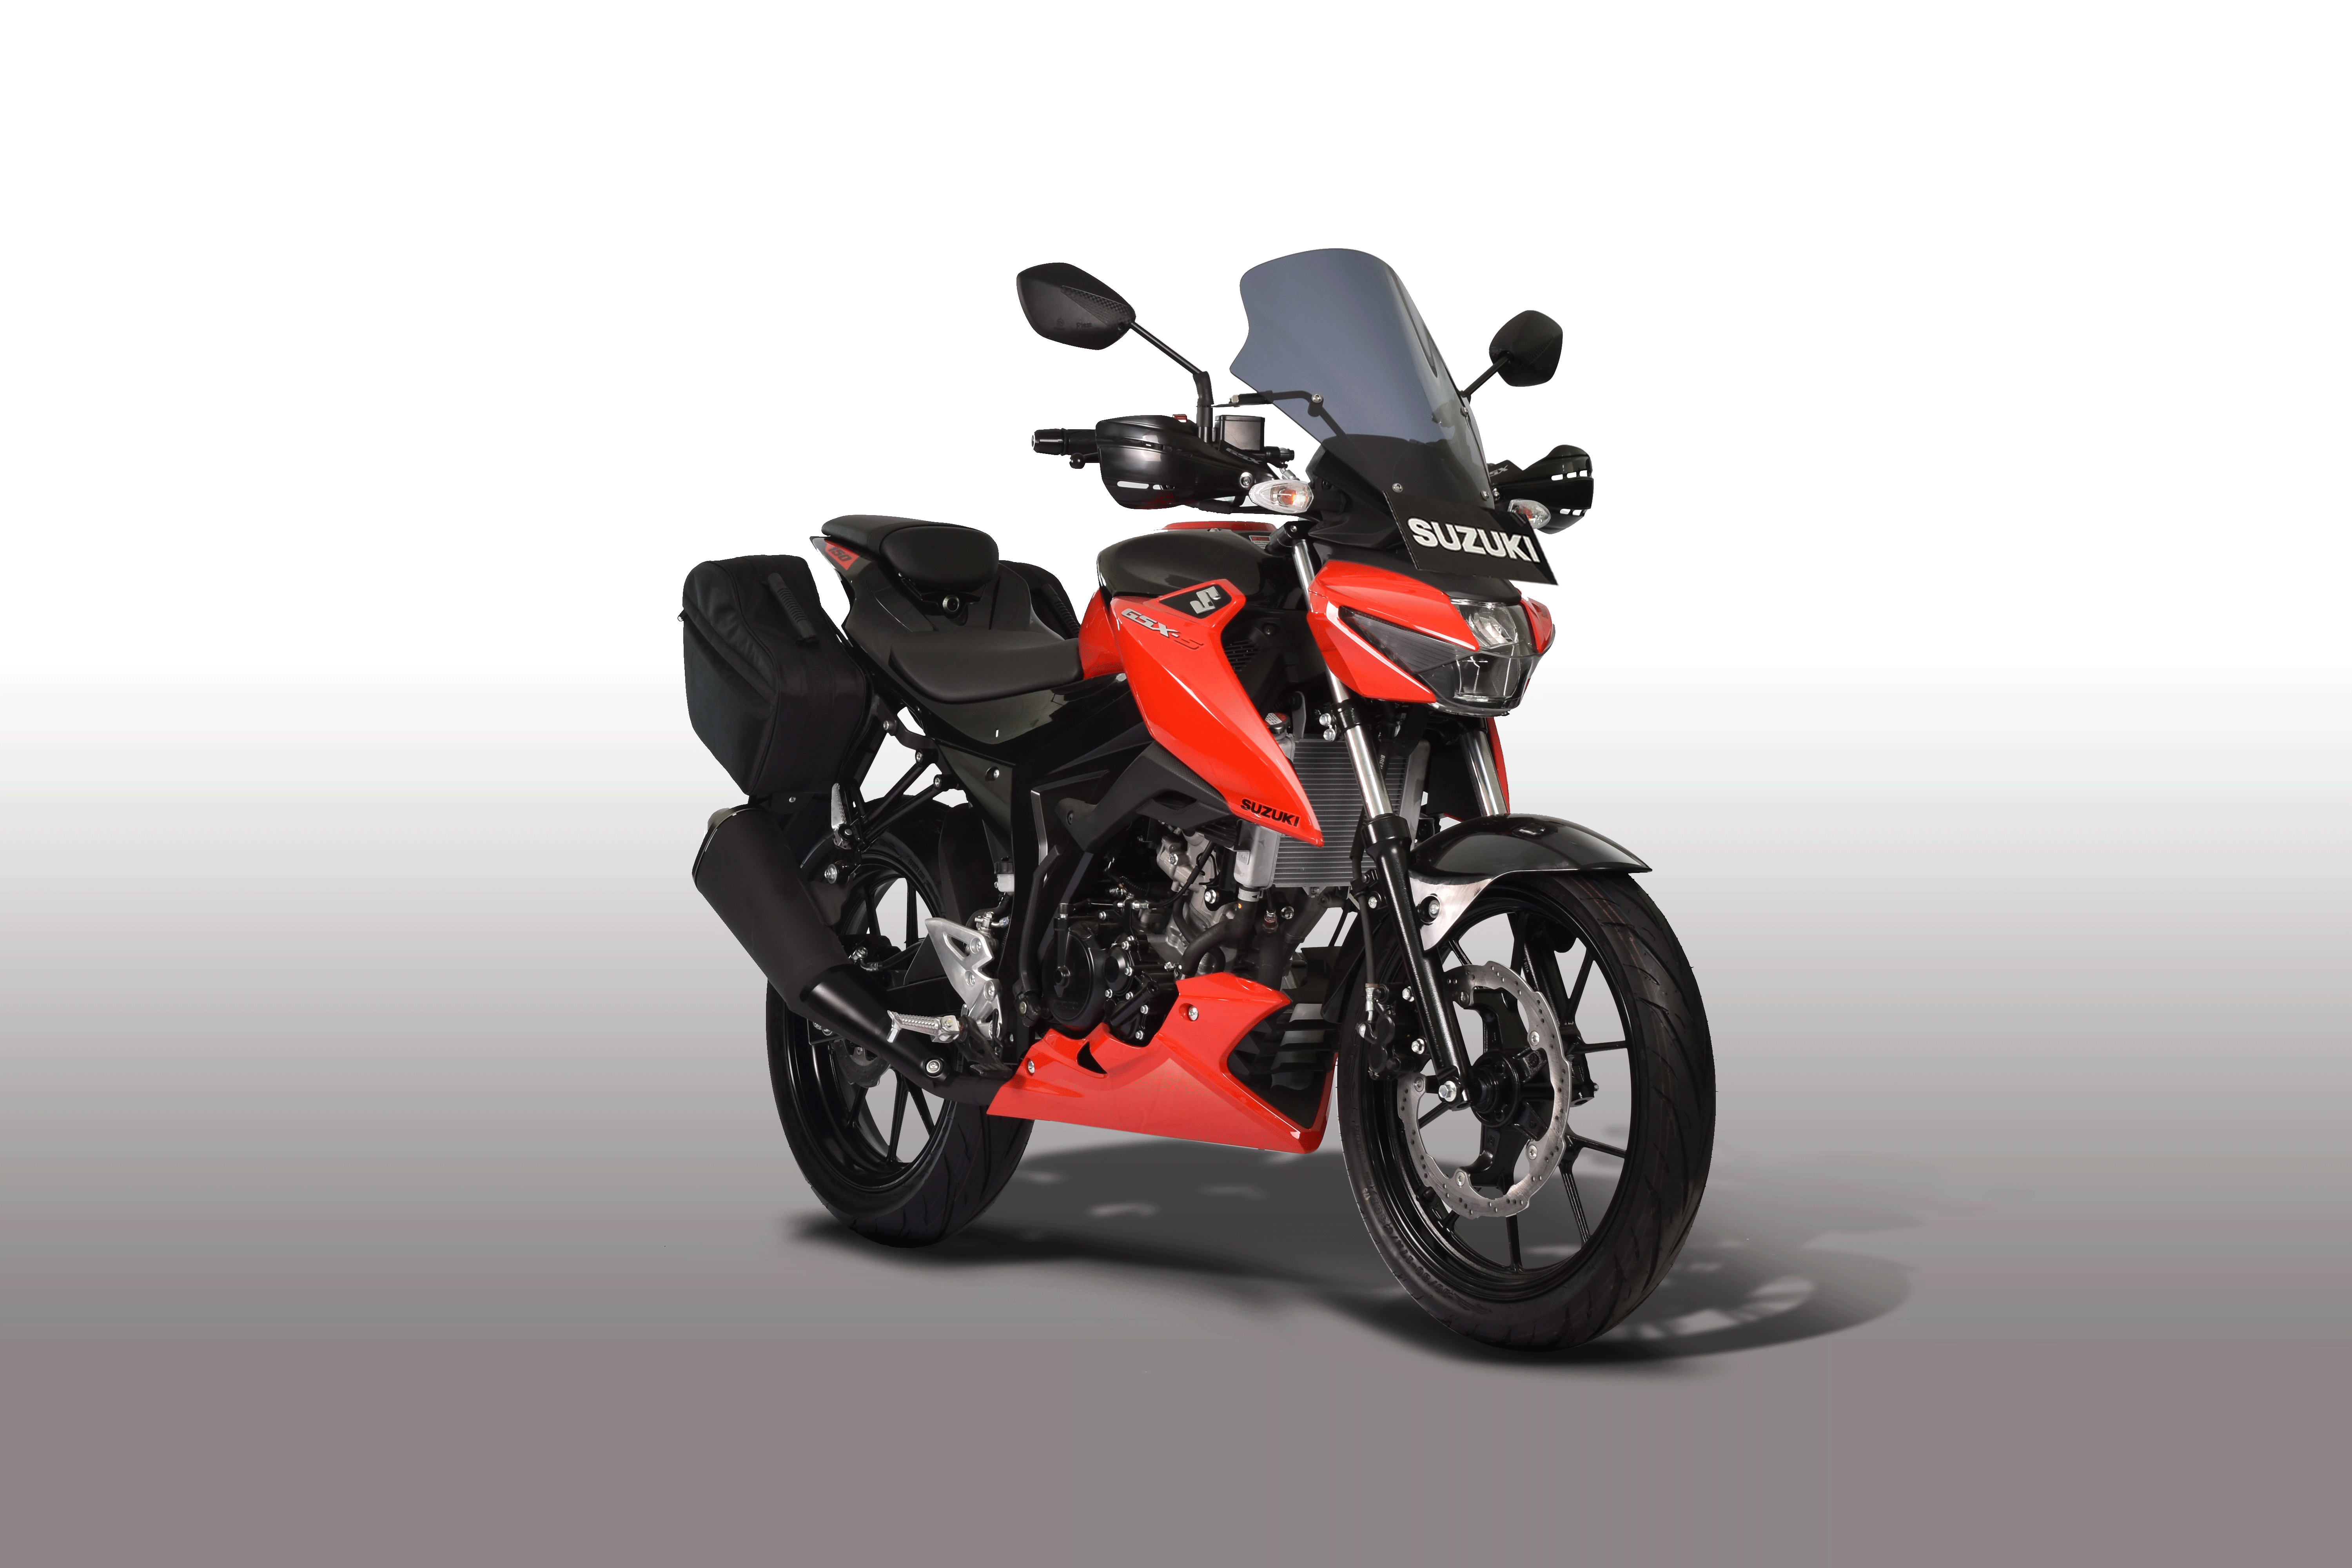 GSX-S150-Touring Edition - Stronger_Red-Black_Titan (1)